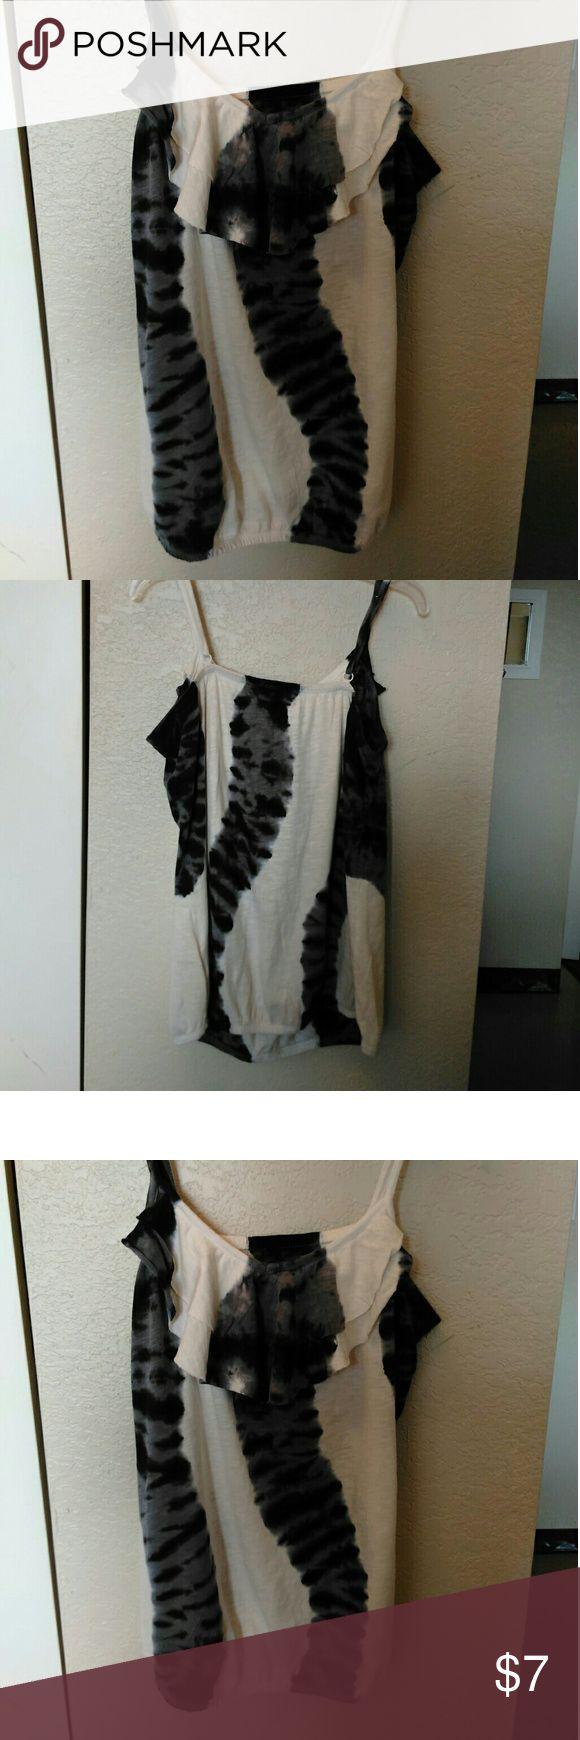 Ruff Hewn Cami Black/White Cami with ruffled scallop bib.   So cute for summer and also under blazer.   Size small.   Measurements are approximate. Ruff Hewn Tops Camisoles